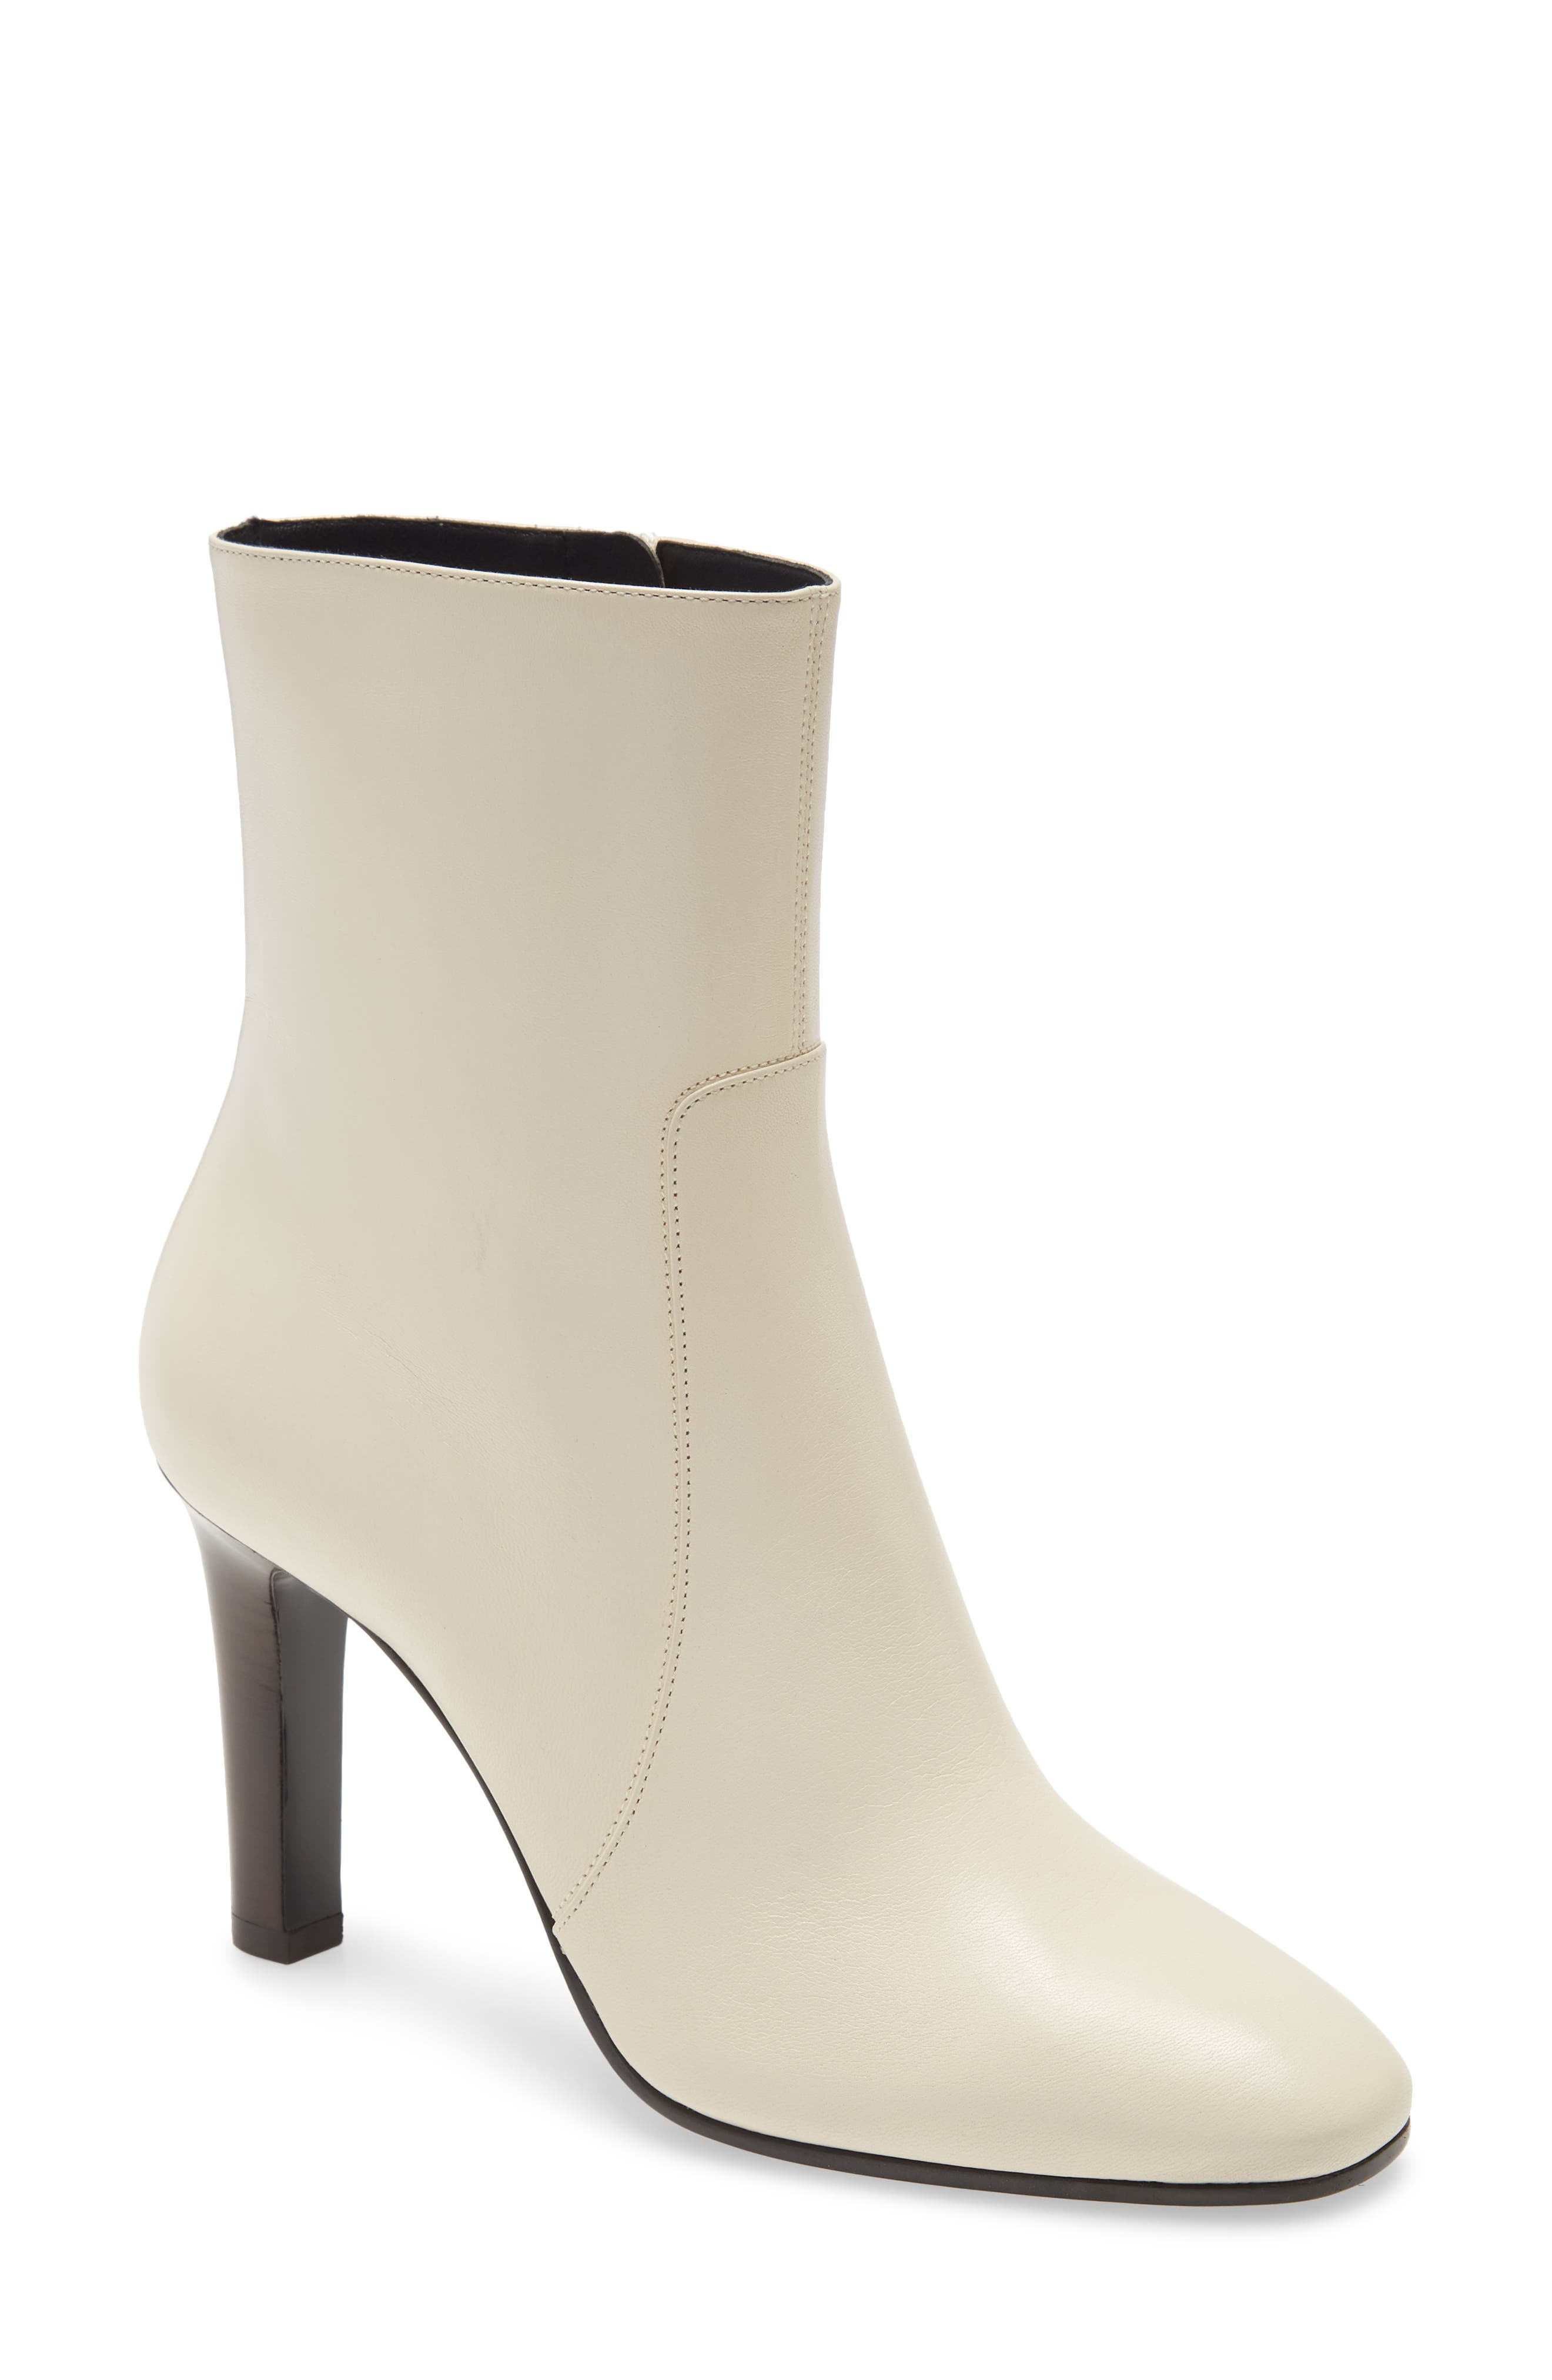 Classic and contemporary at the same time, this bootie is crafted in Italy from smooth leather with a subtly squared toe and slender stacked heel. Style Name: Saint Laurent Blu Bootie (Women). Style Number: 6083707. Available in stores.